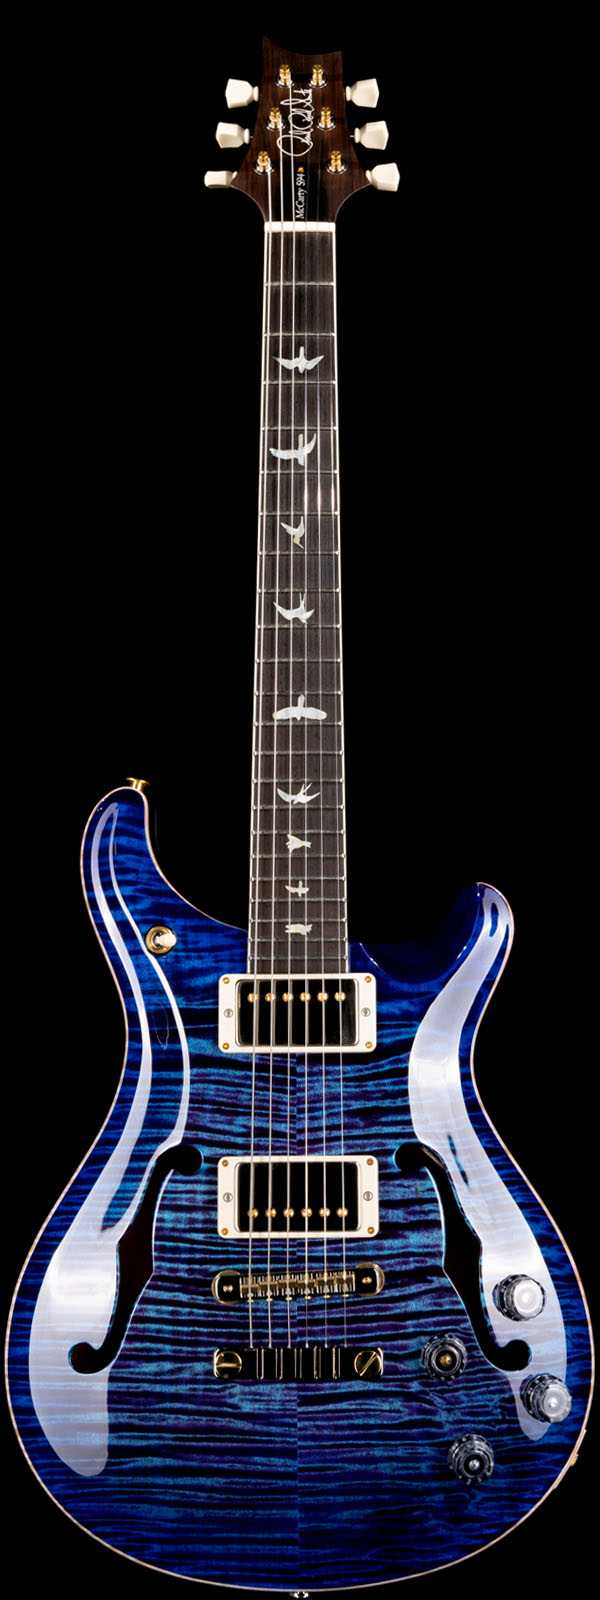 PRS Wood Library McCarty 594 Hollowbody II Flame Maple 10 Top Violet Blue Burst